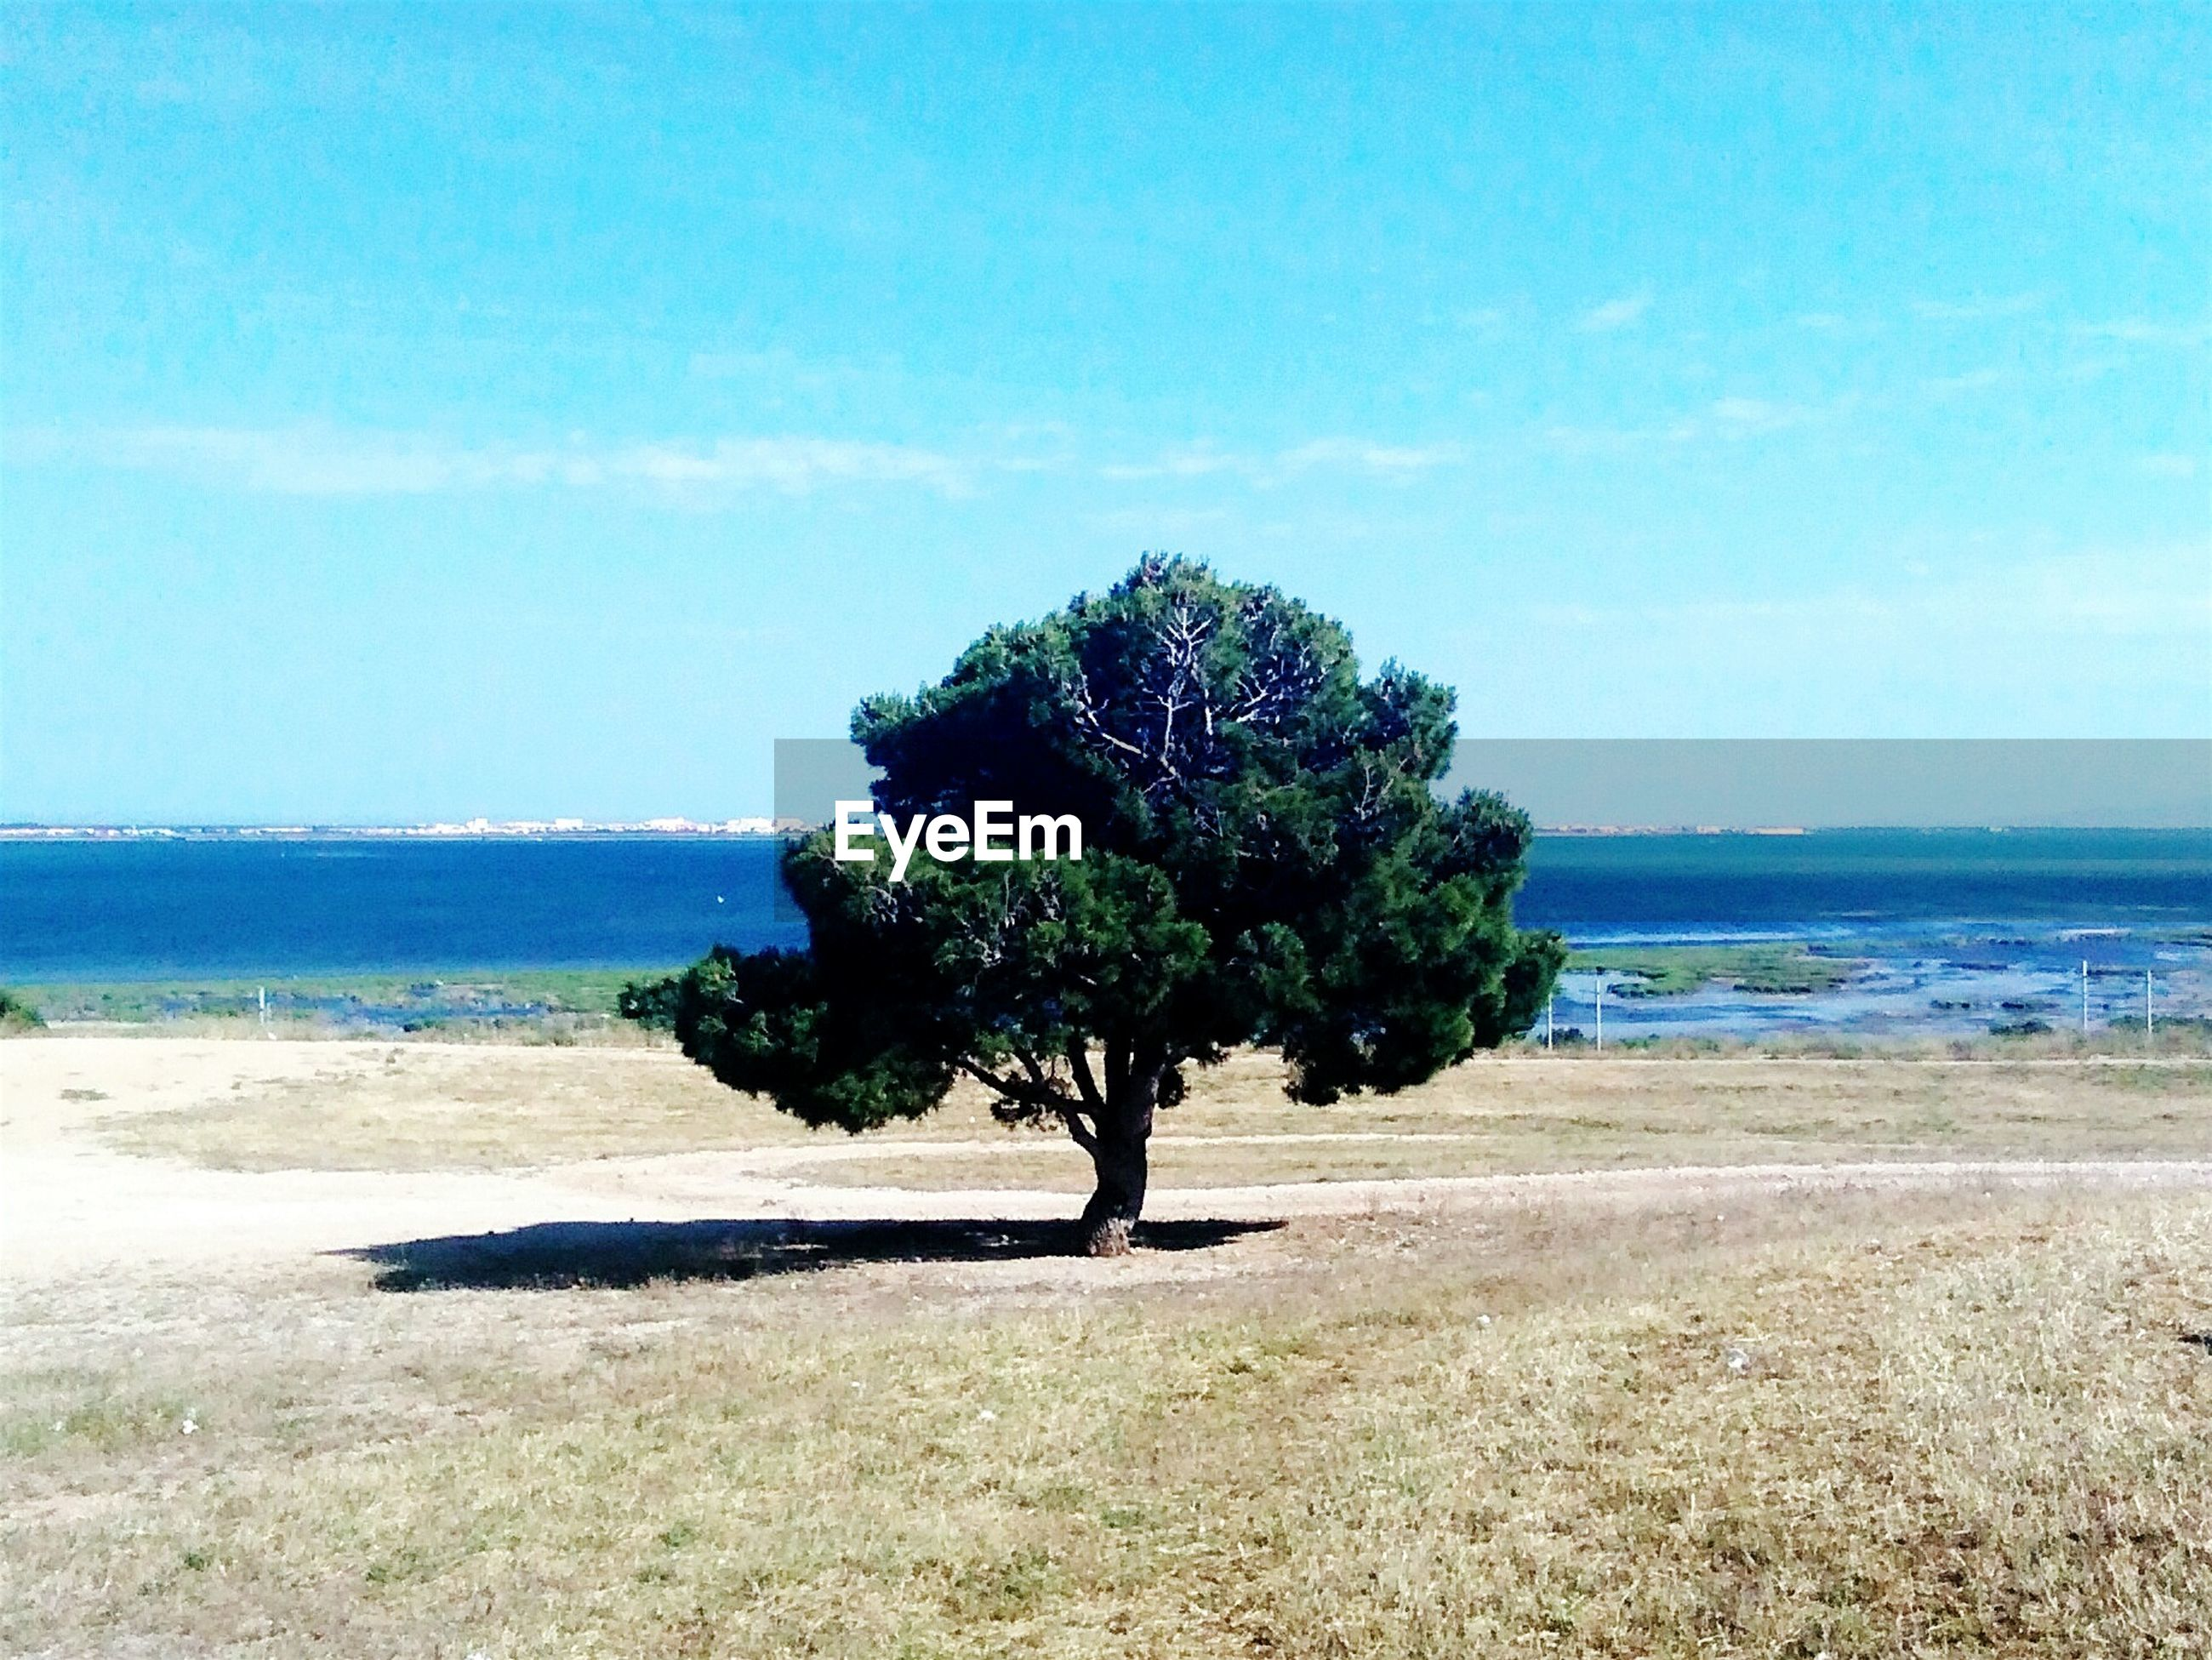 Tree growing on field in front of blue sea against sky